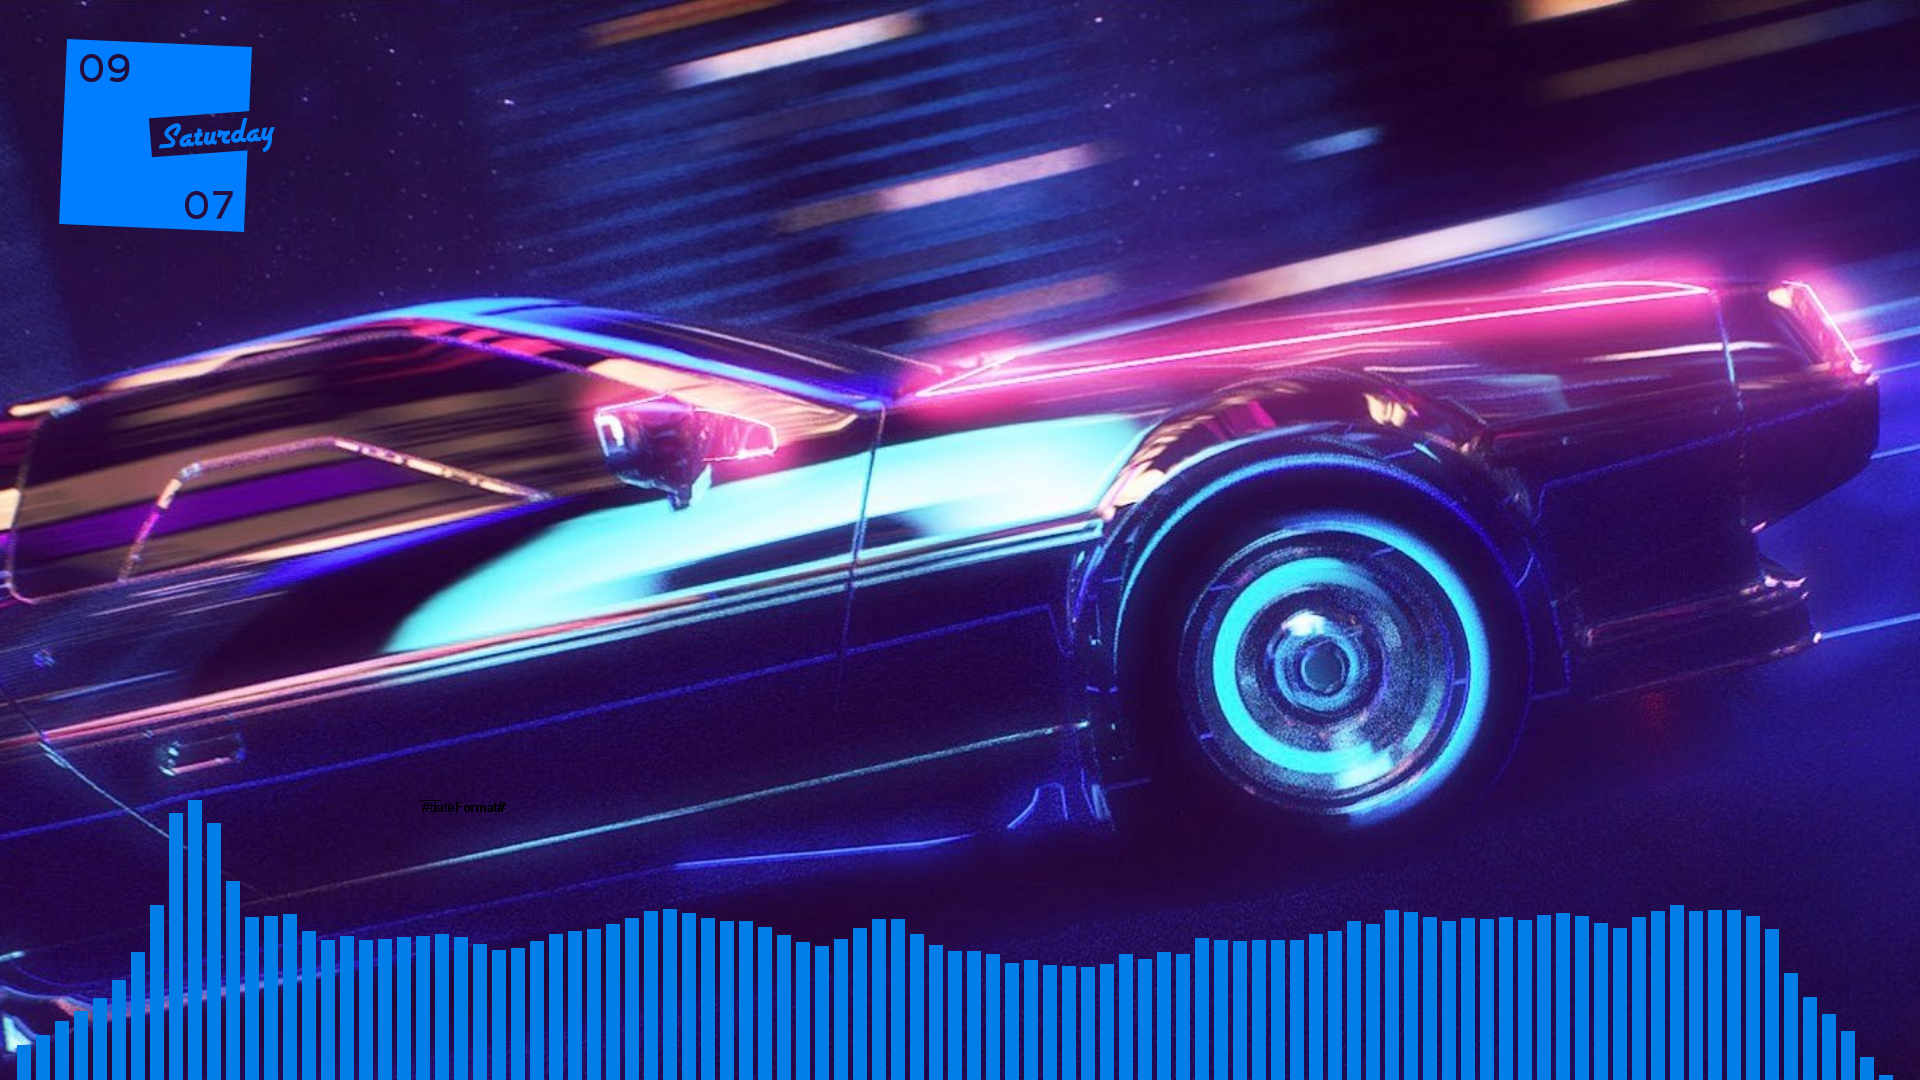 The Synthwave Desktop